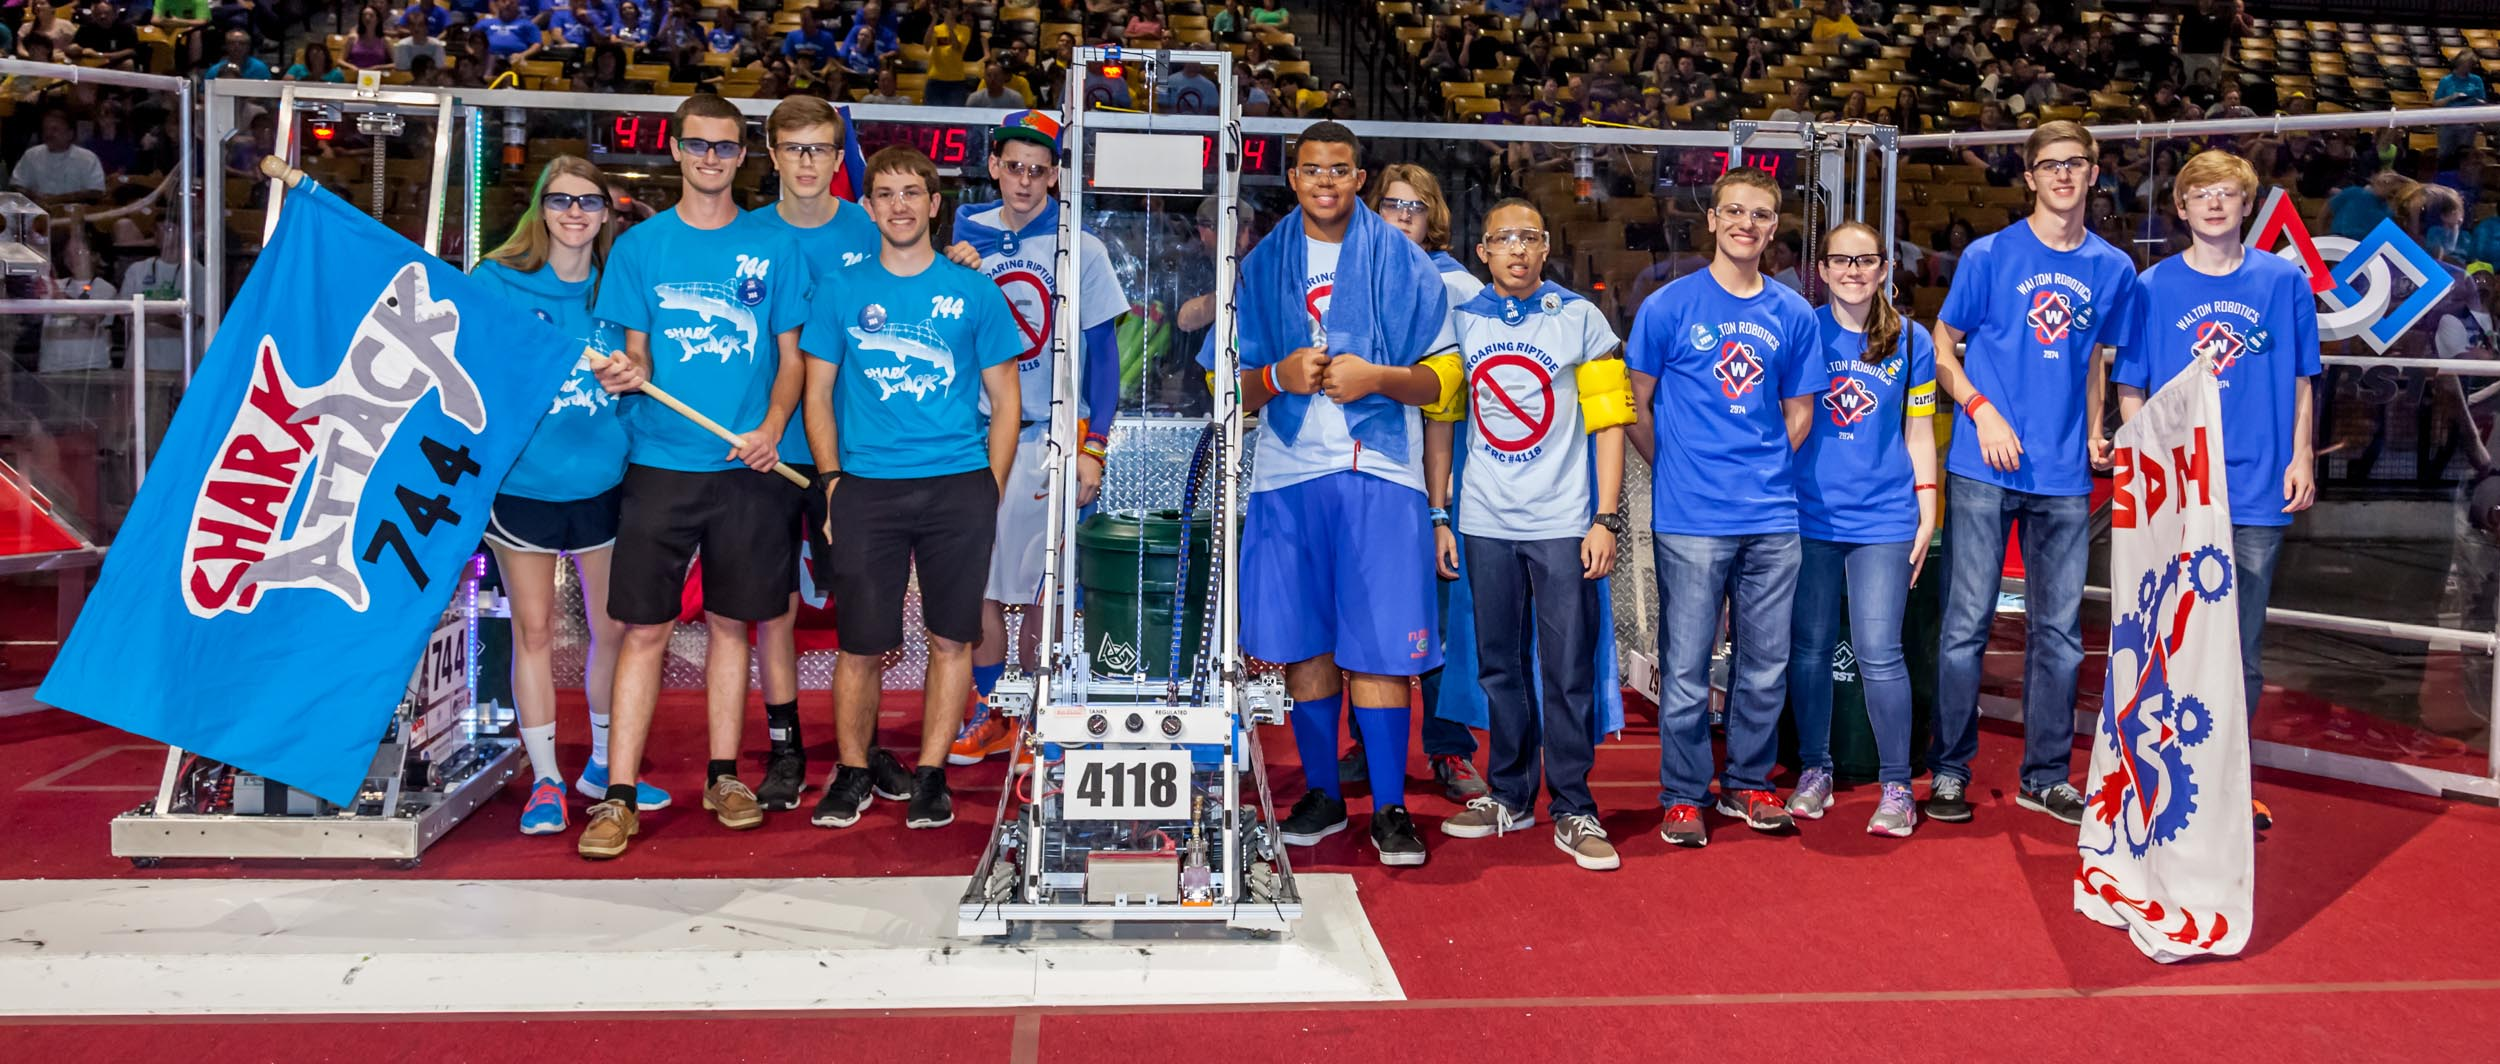 FIRST Robotics Orlando 2015 -9320 web